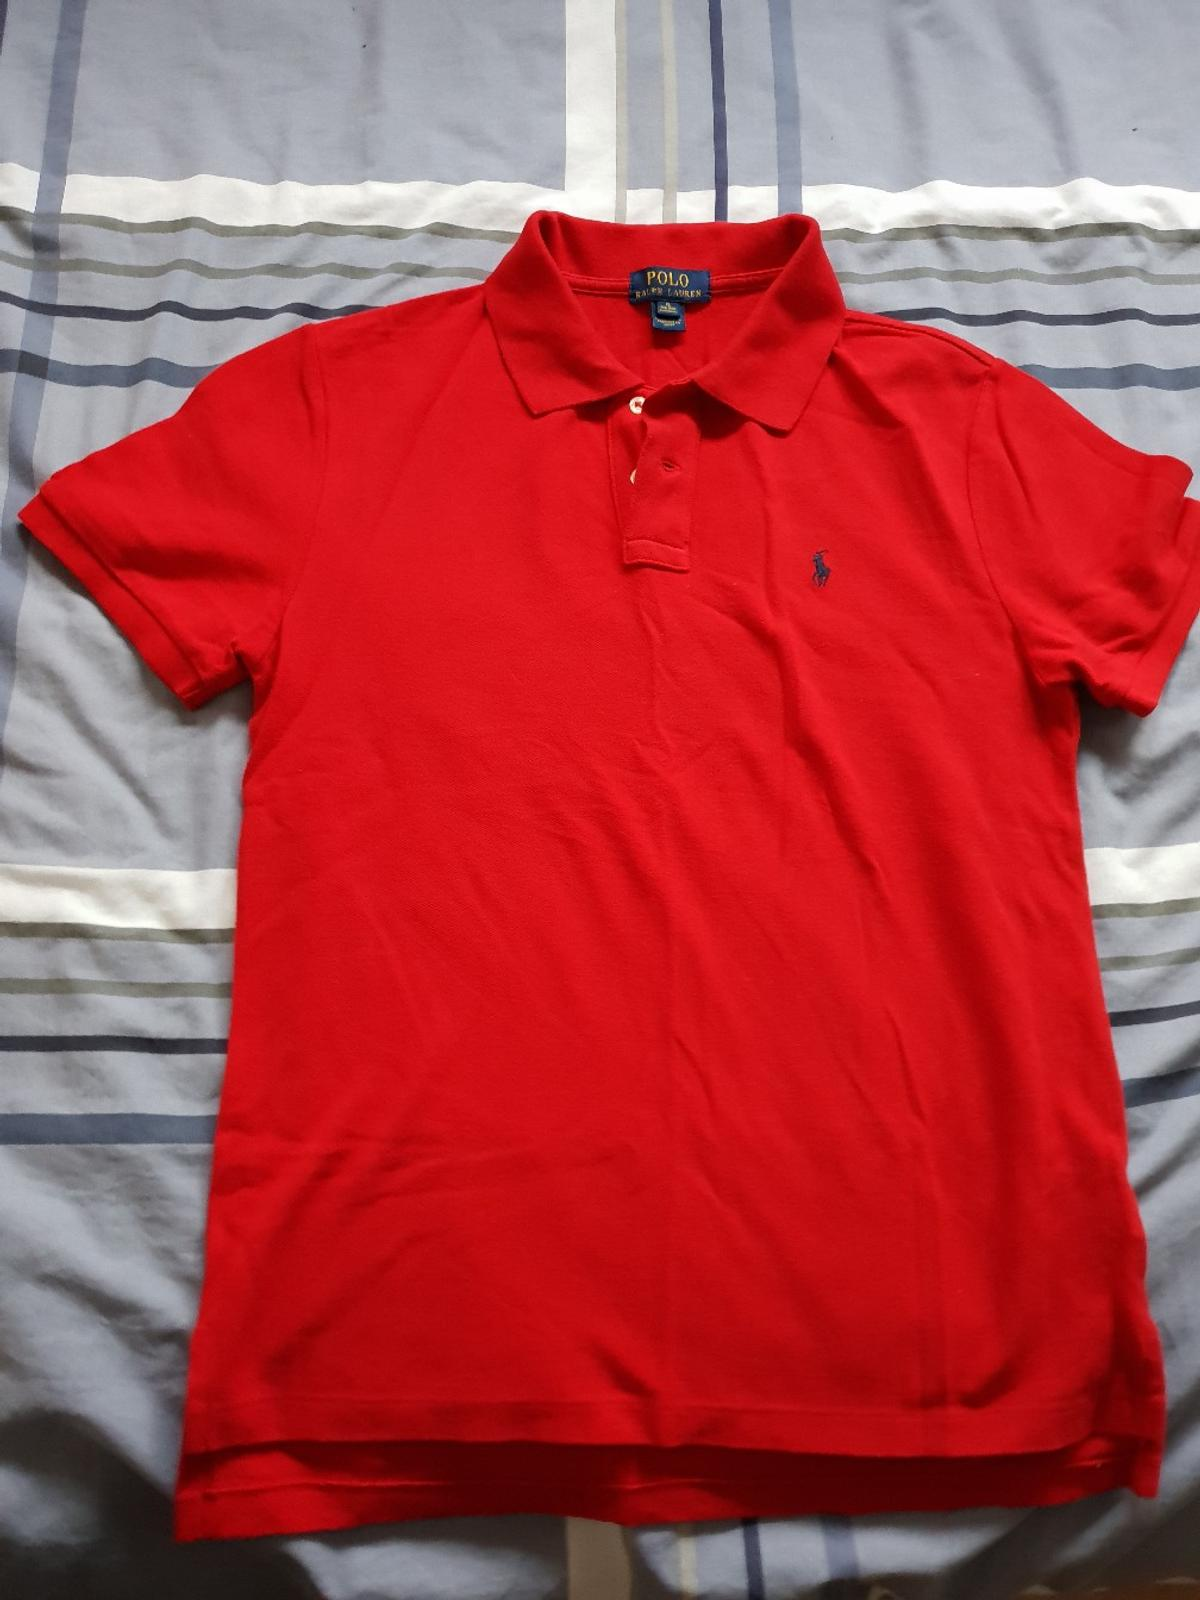 00 X 4 N7 Lauren Age For £30 Islington Tops 16 In Polo Boys Ralph 14 pUMSVqz